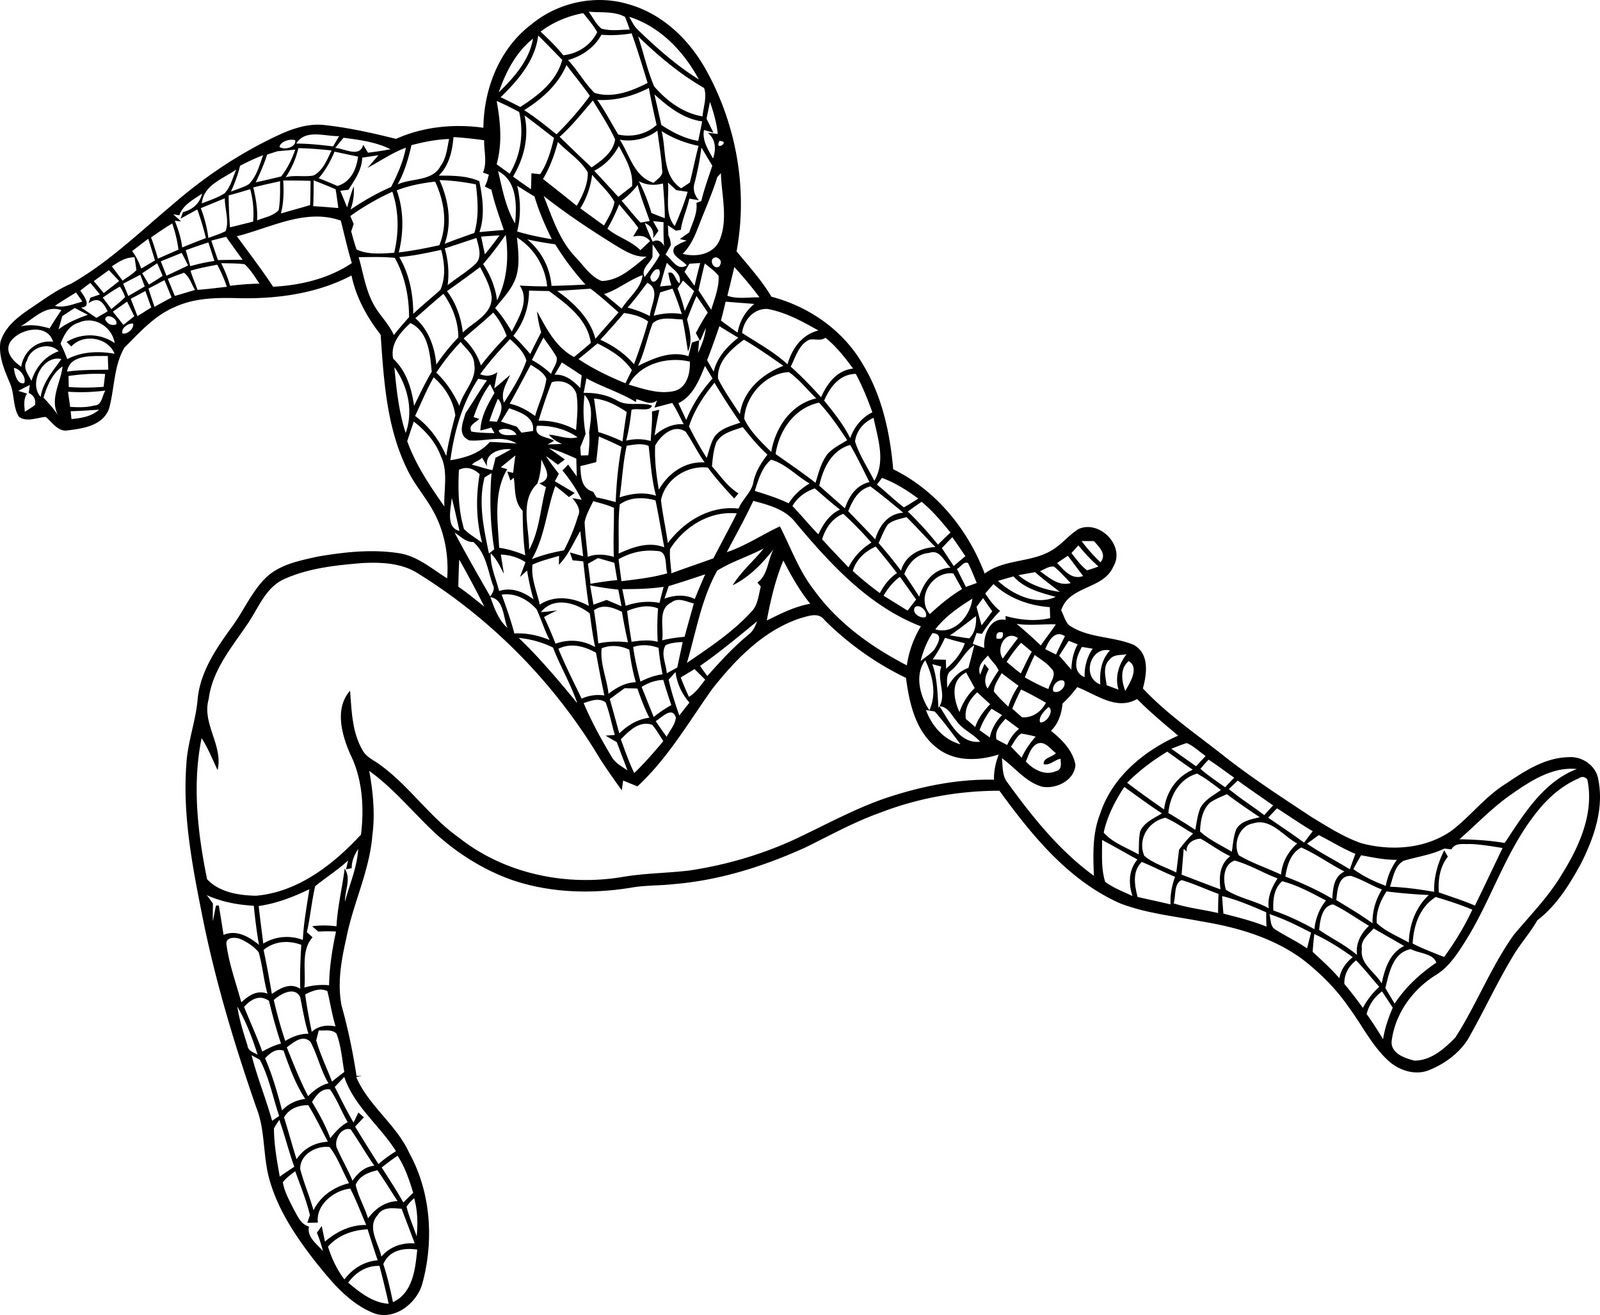 Spiderman Coloring Pages Free Coloring Pages Printable For Kids And Adults In 2020 Superhero Coloring Pages Avengers Coloring Pages Superhero Coloring